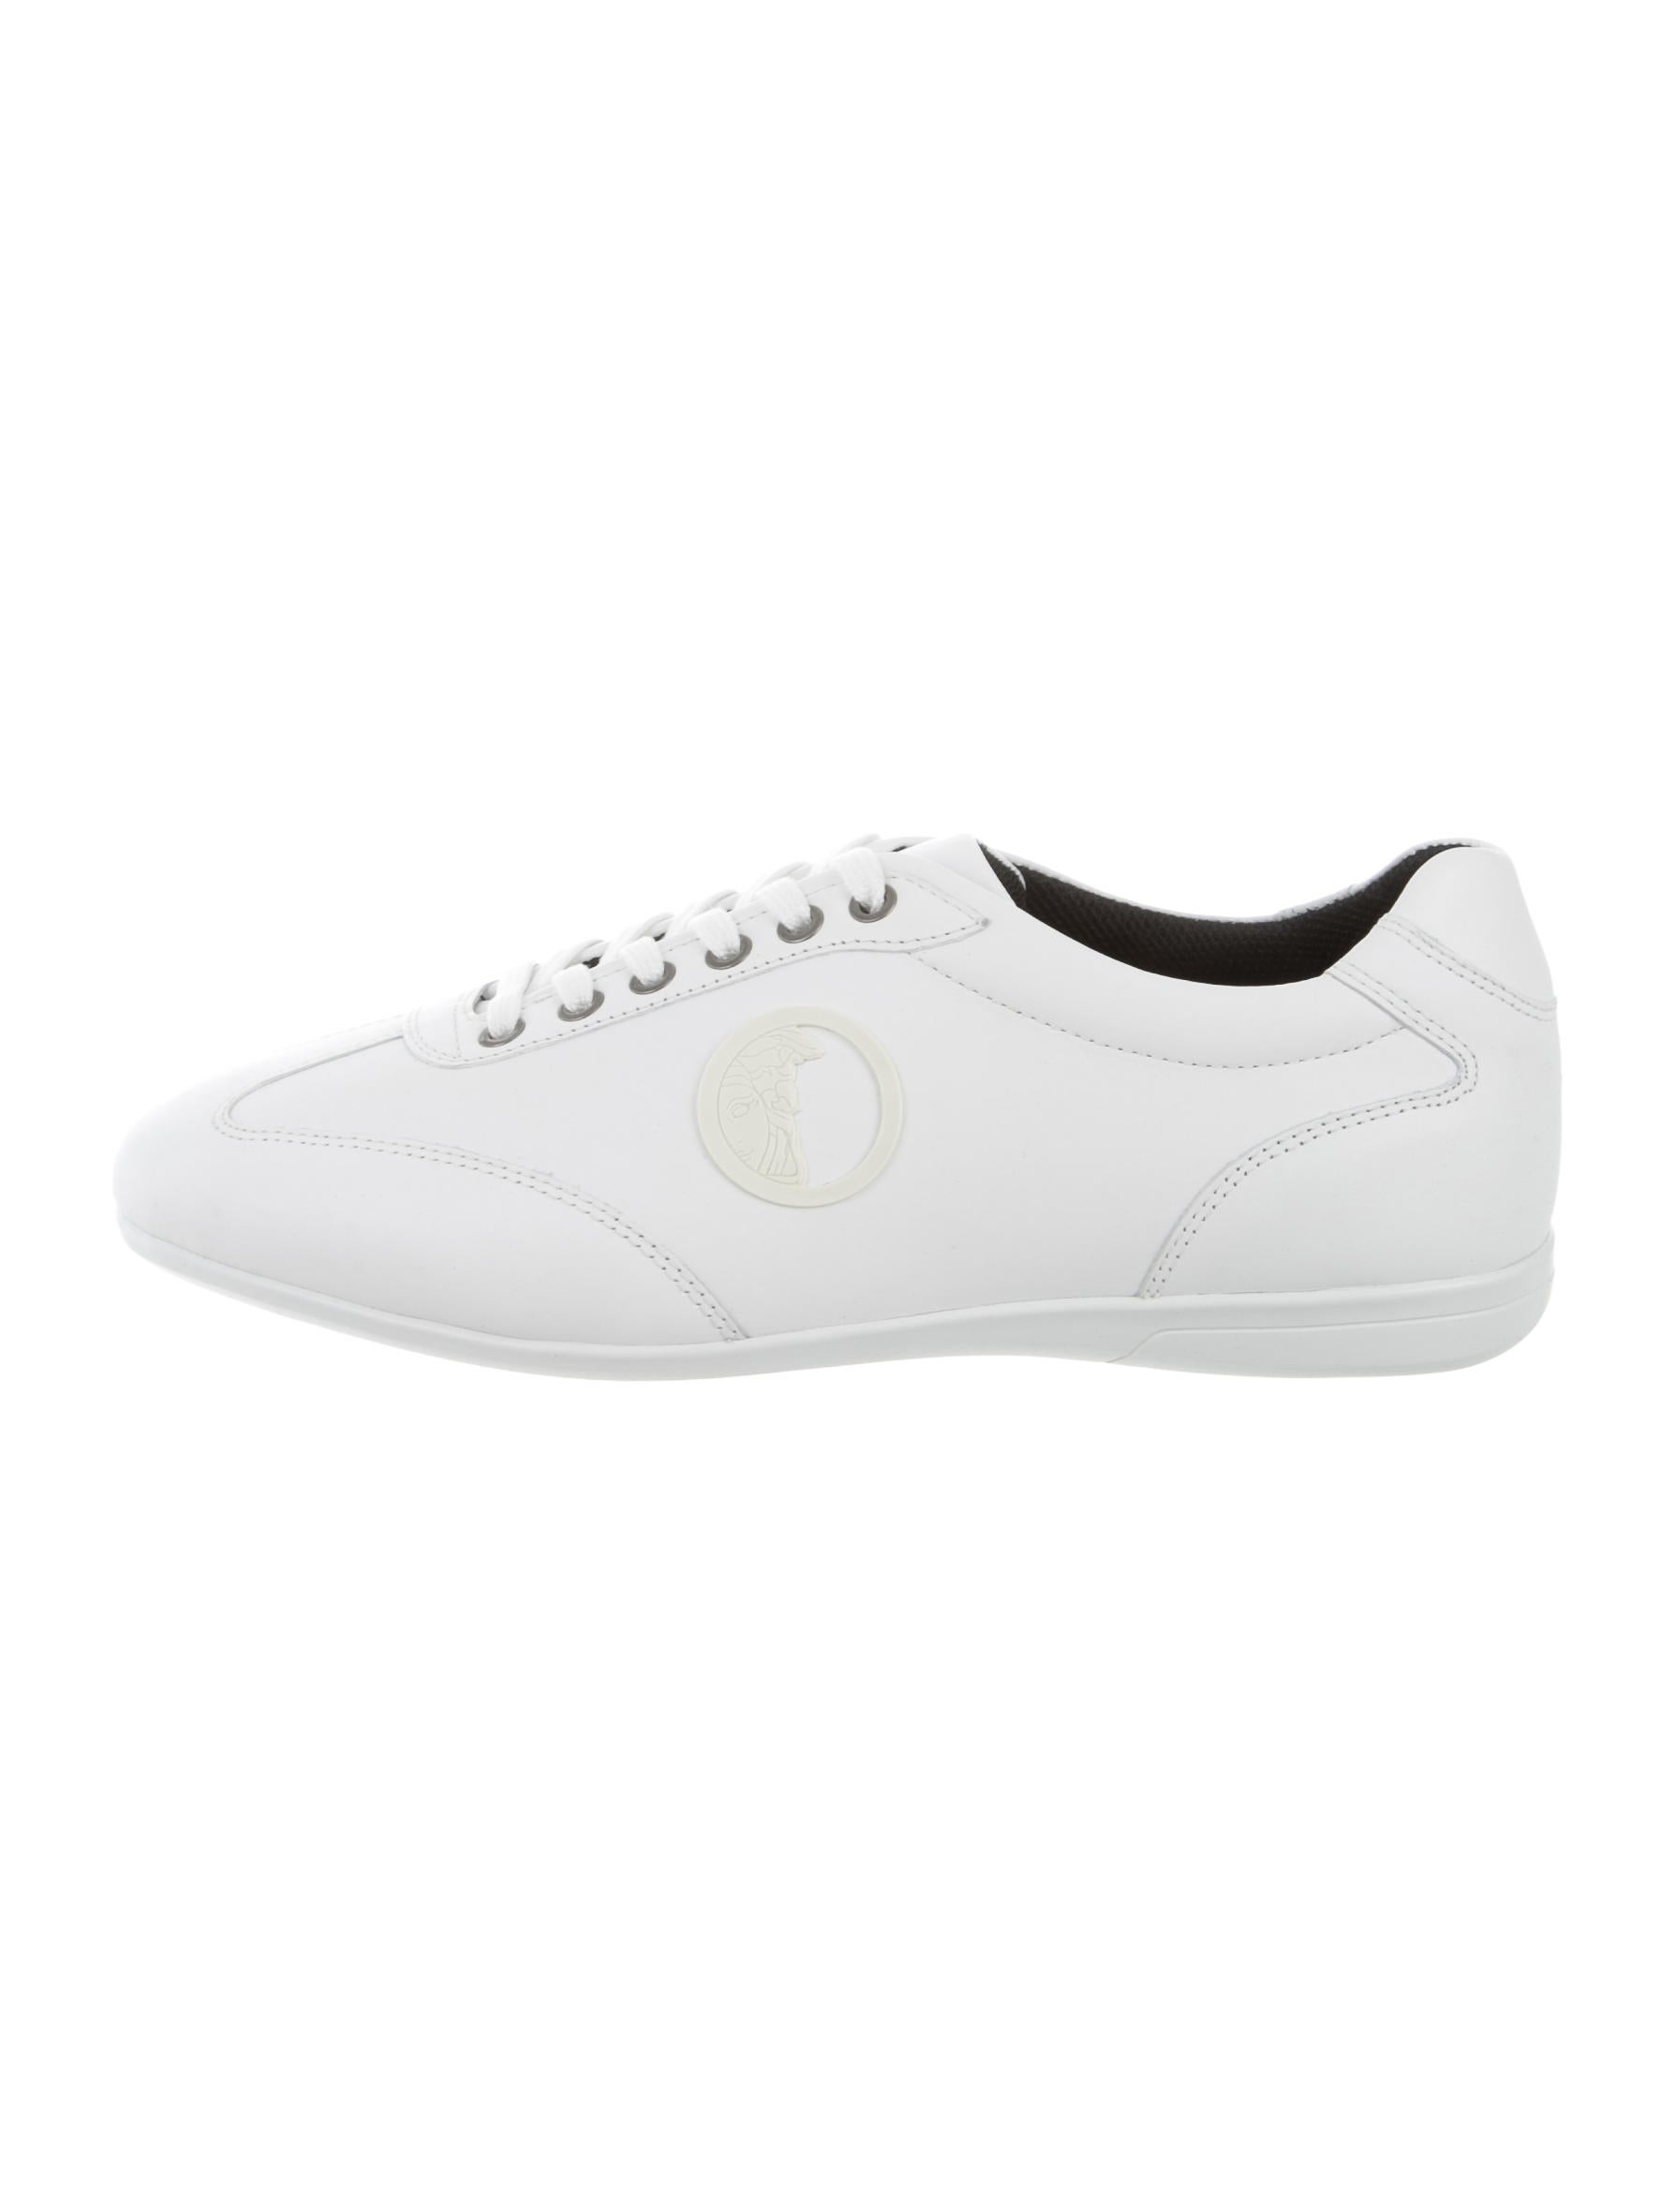 versace collection leather medusa sneakers w tags shoes